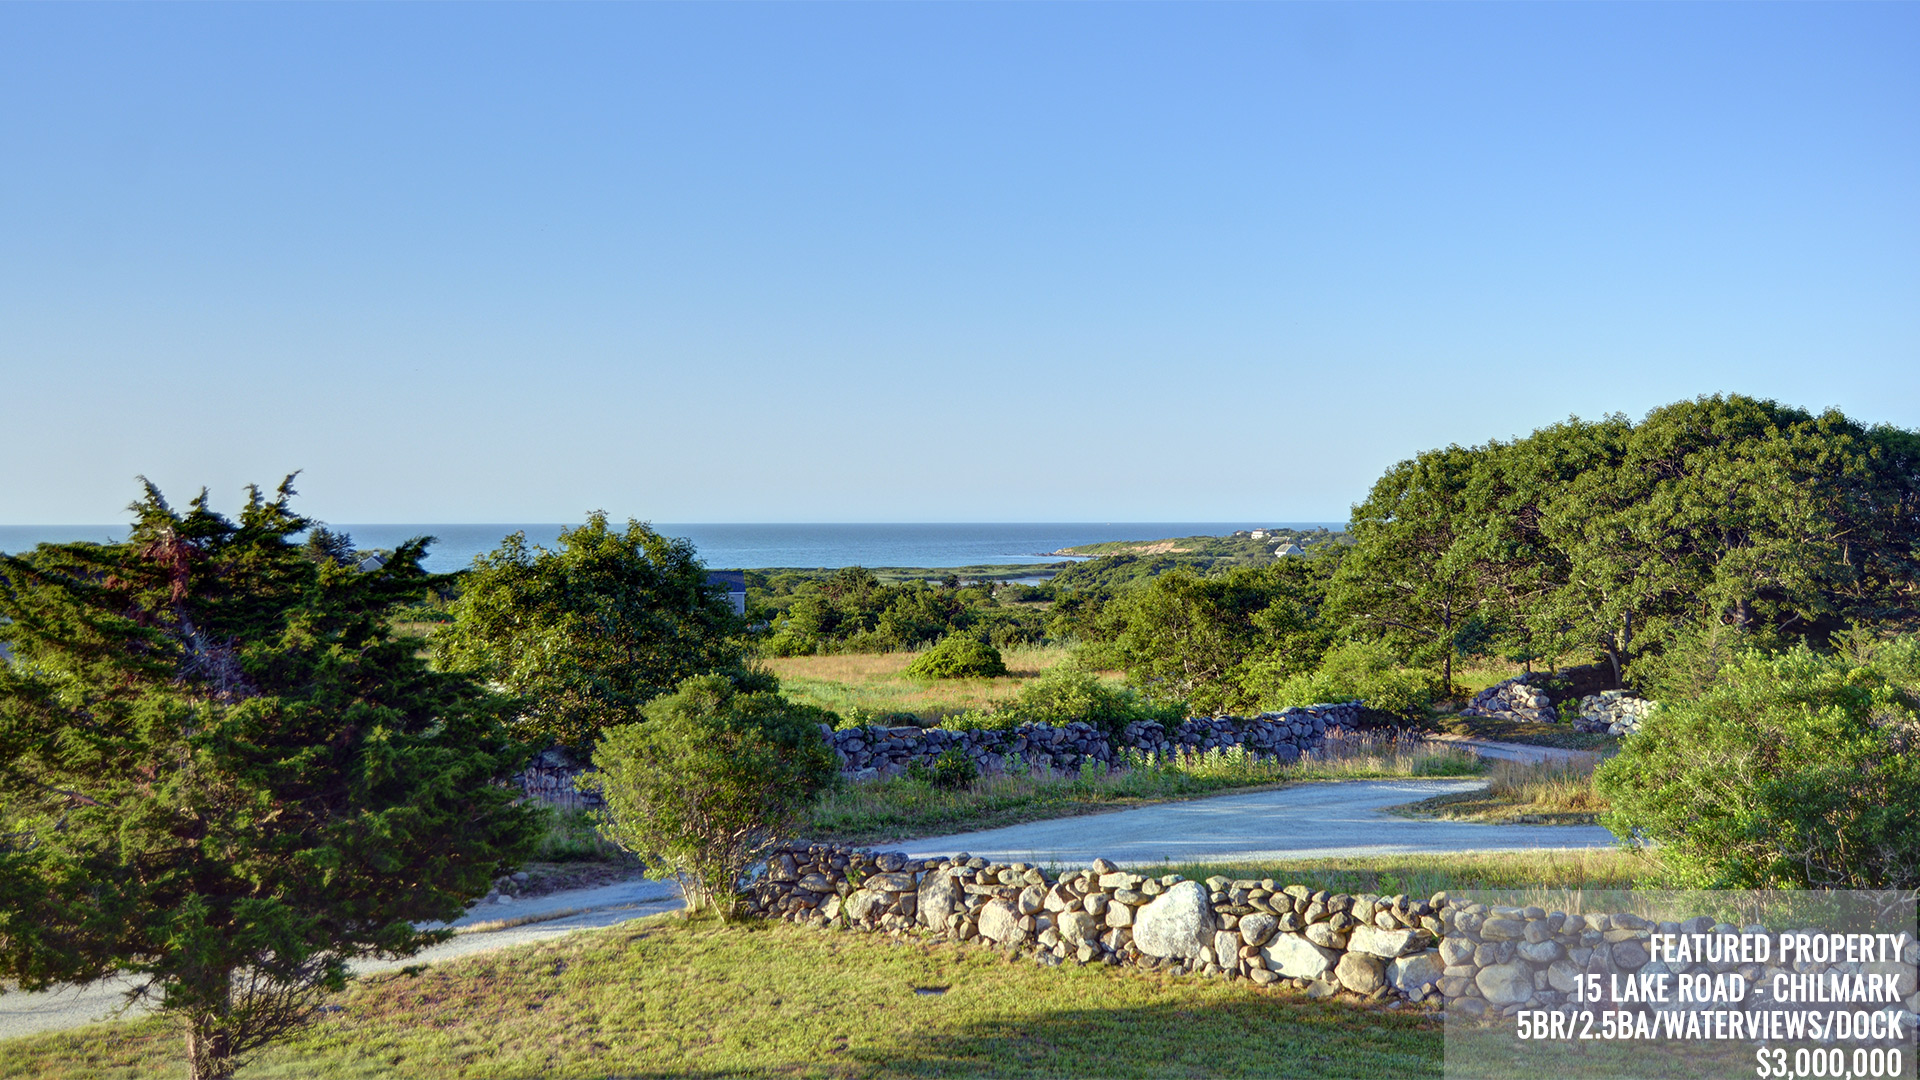 15 Lake Road, Chilmark, Martha's Vineyard